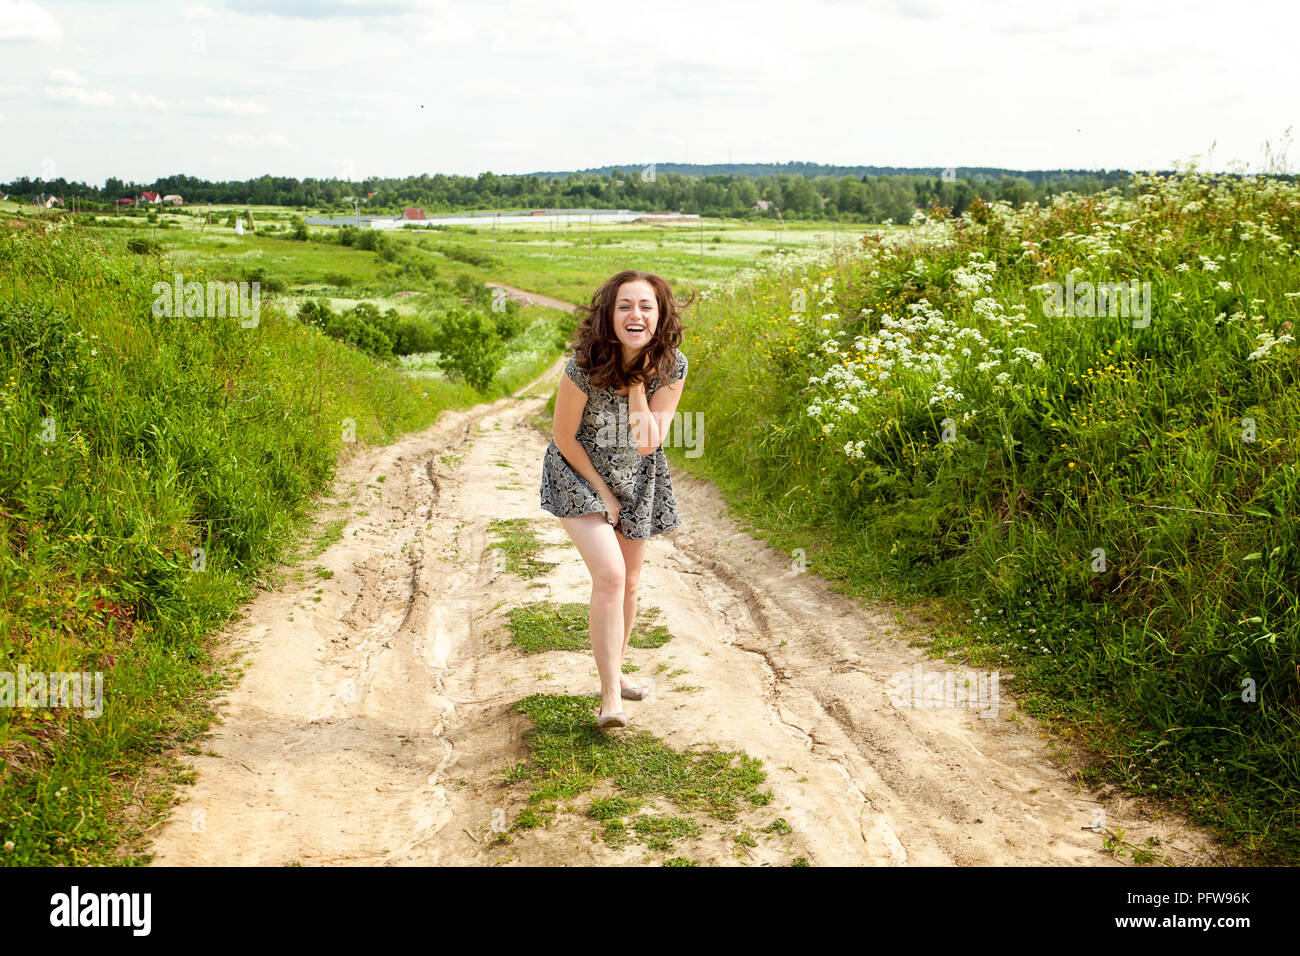 Beauty Girl Outdoors Enjoying Nature Beautiful Woman Jumping On Summer Field With Blooming Wild Flowers Sun Light Free Happy Woman Stock Photo Alamy